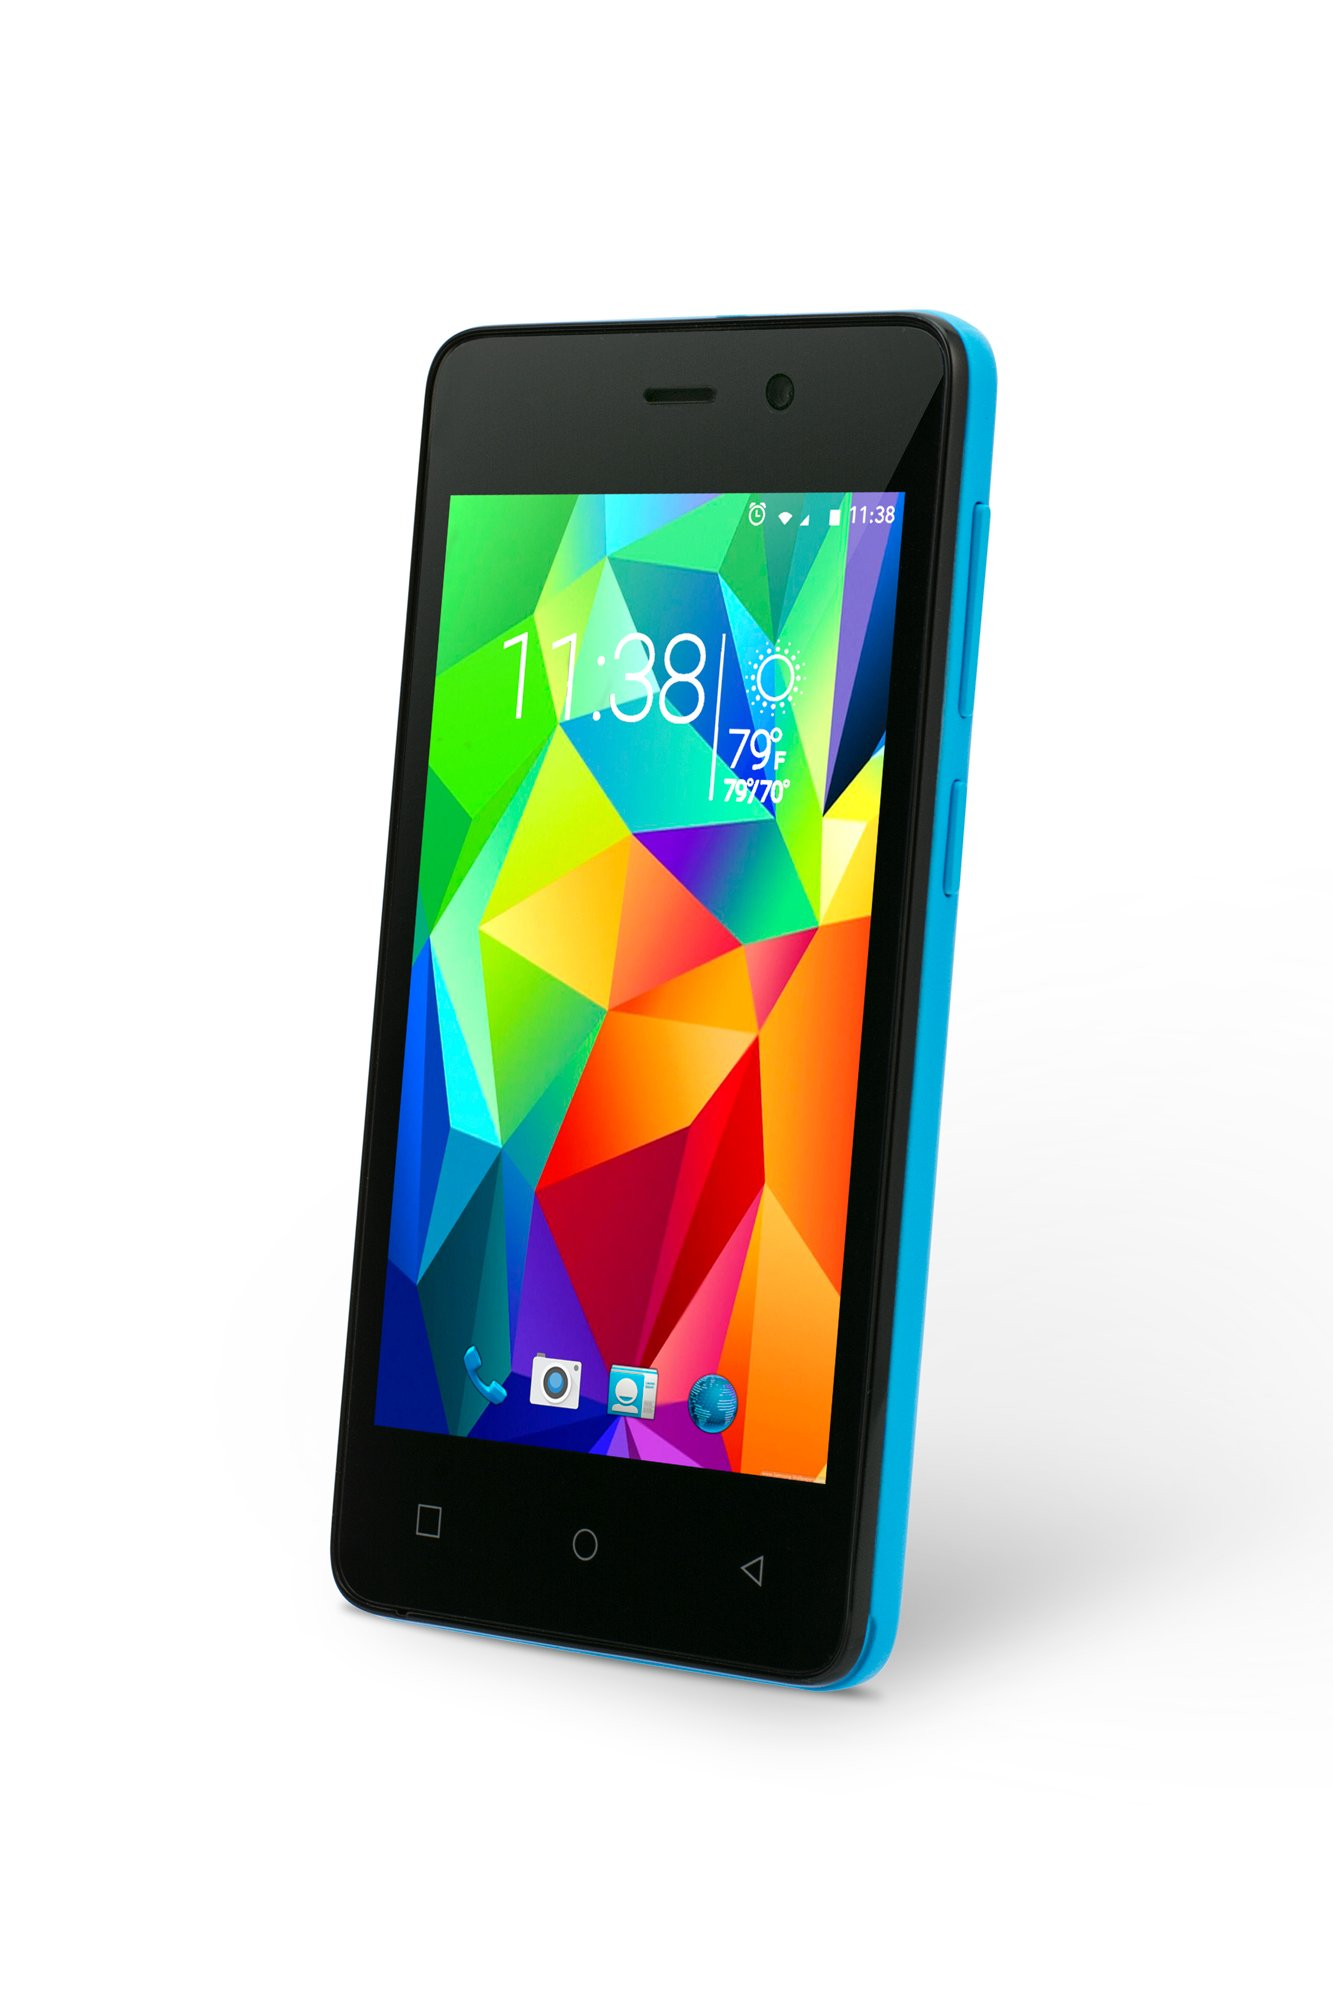 SLIDE Dual SIM 4'' Unlocked Smartphone, Quad Core 1.3GHz Processor, 8GB Storage, 3G GSM Coverage - Blue (SP4023)